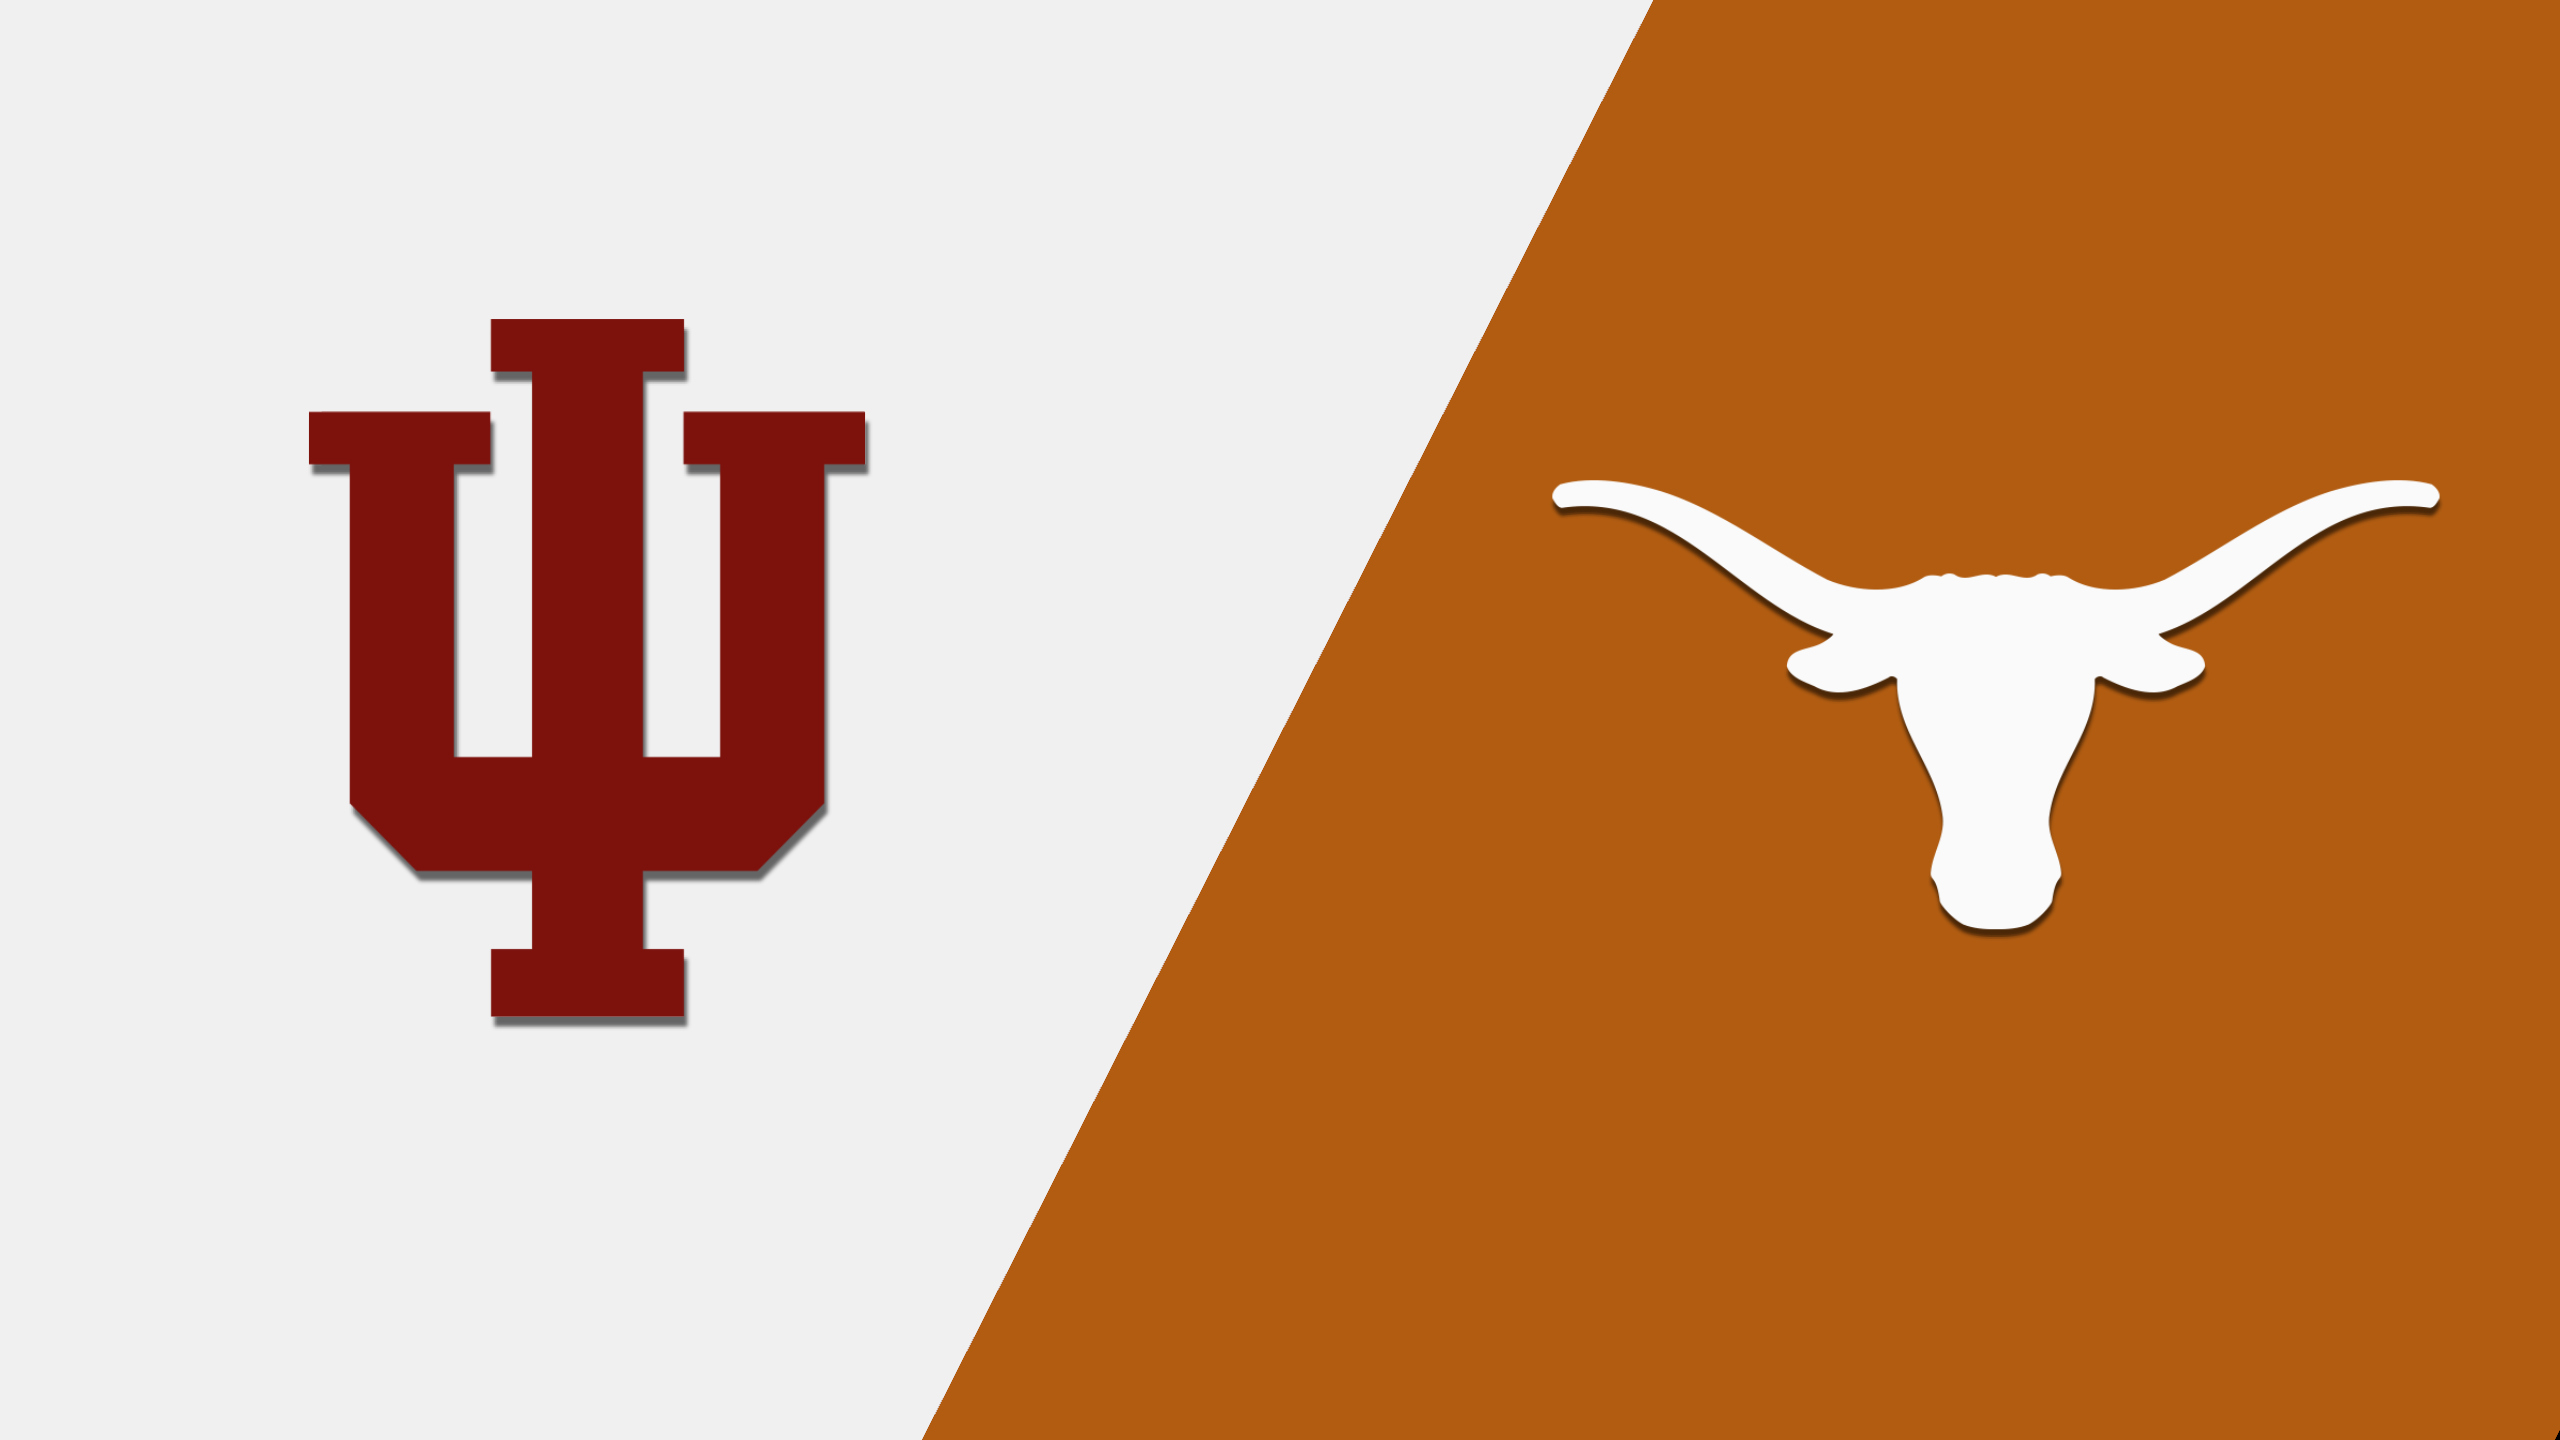 #10 Indiana vs. #7 Texas (First Round) (NCAA Women's Basketball Championship)